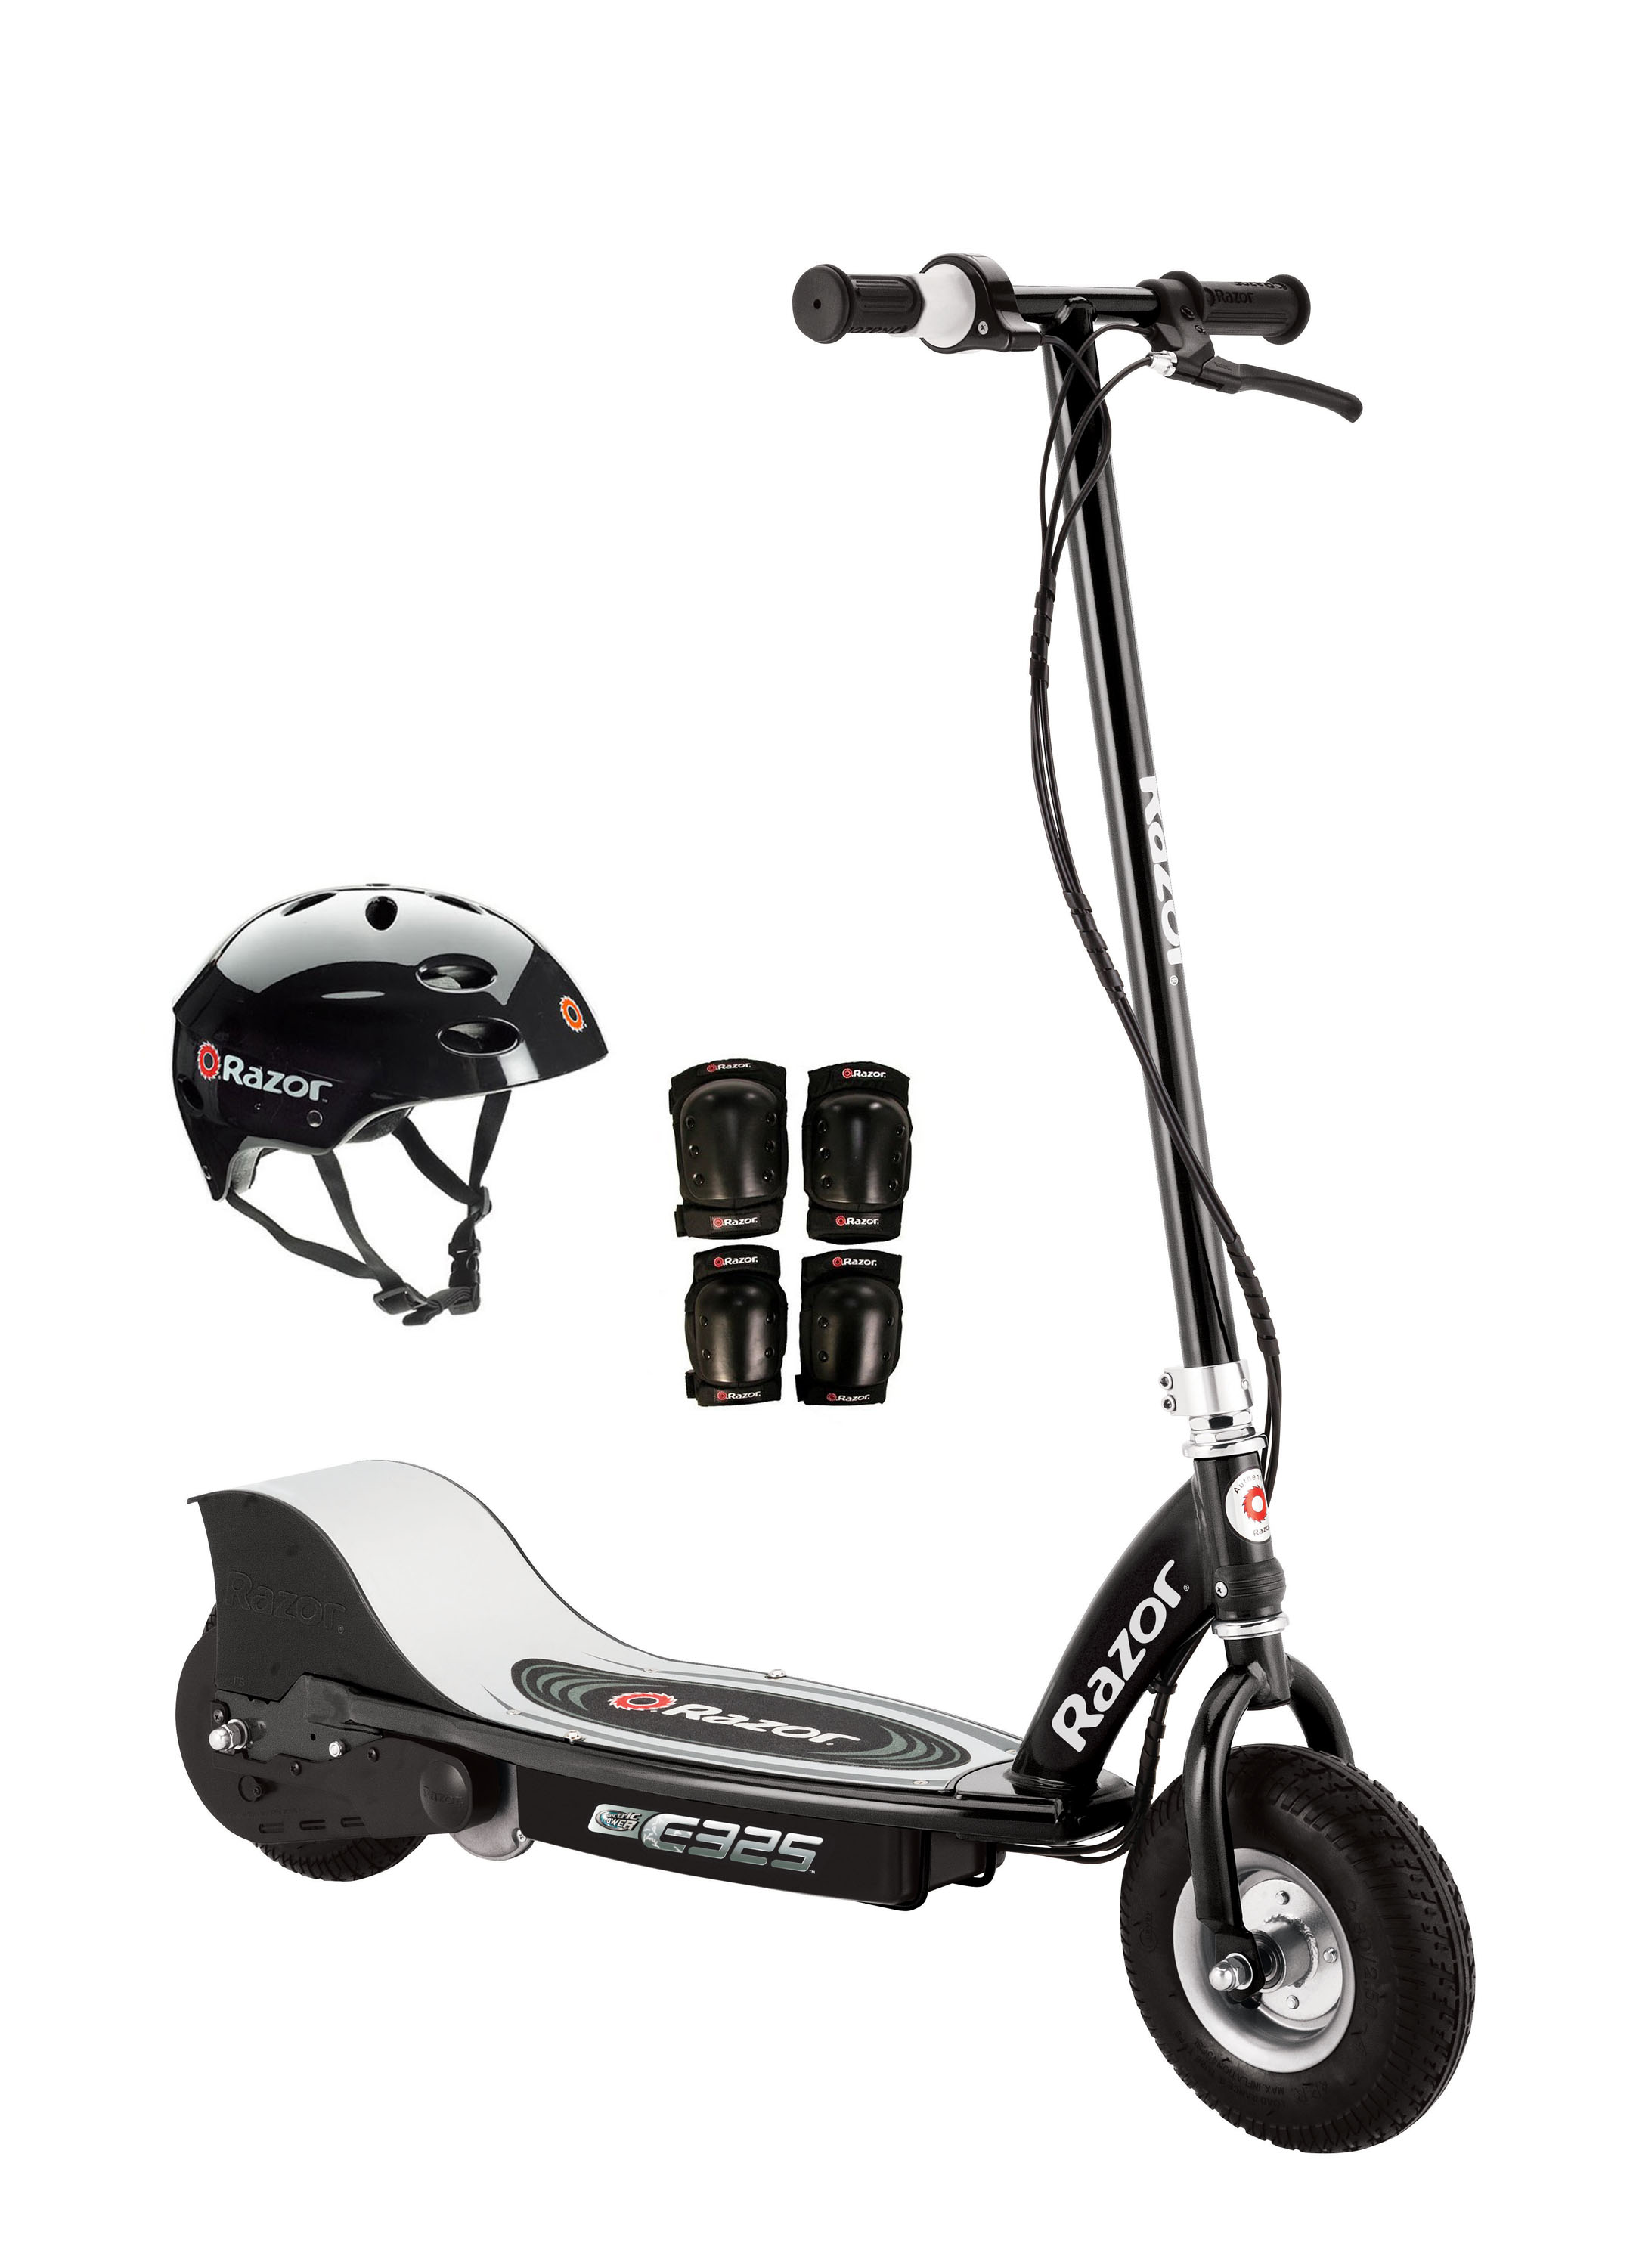 Razor E325 Electric 24V Motorized Scooter (Black) w  Helmet, Elbow and Knee Pads by Razor